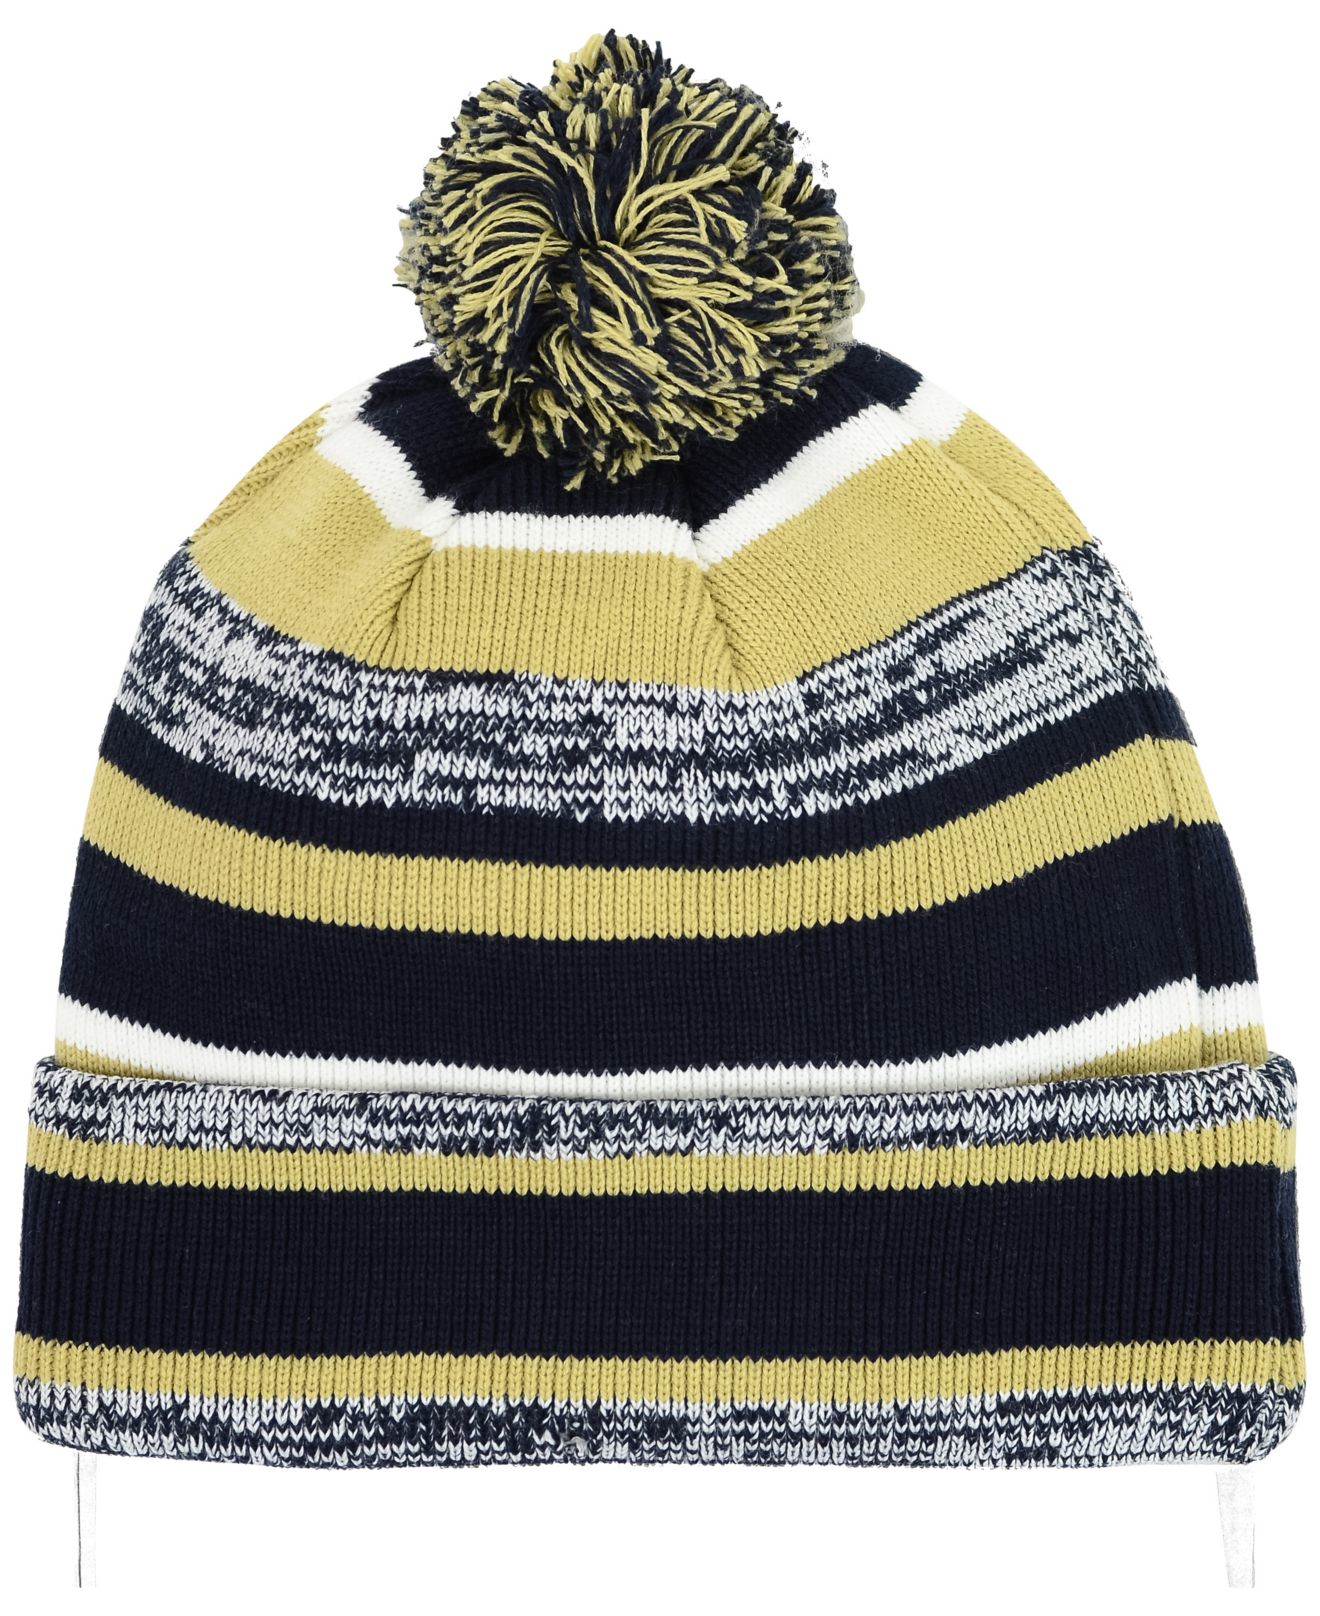 96a85cd501197 ... reduced lyst ktz georgia tech yellow jackets sport knit hat for men  324c8 54125